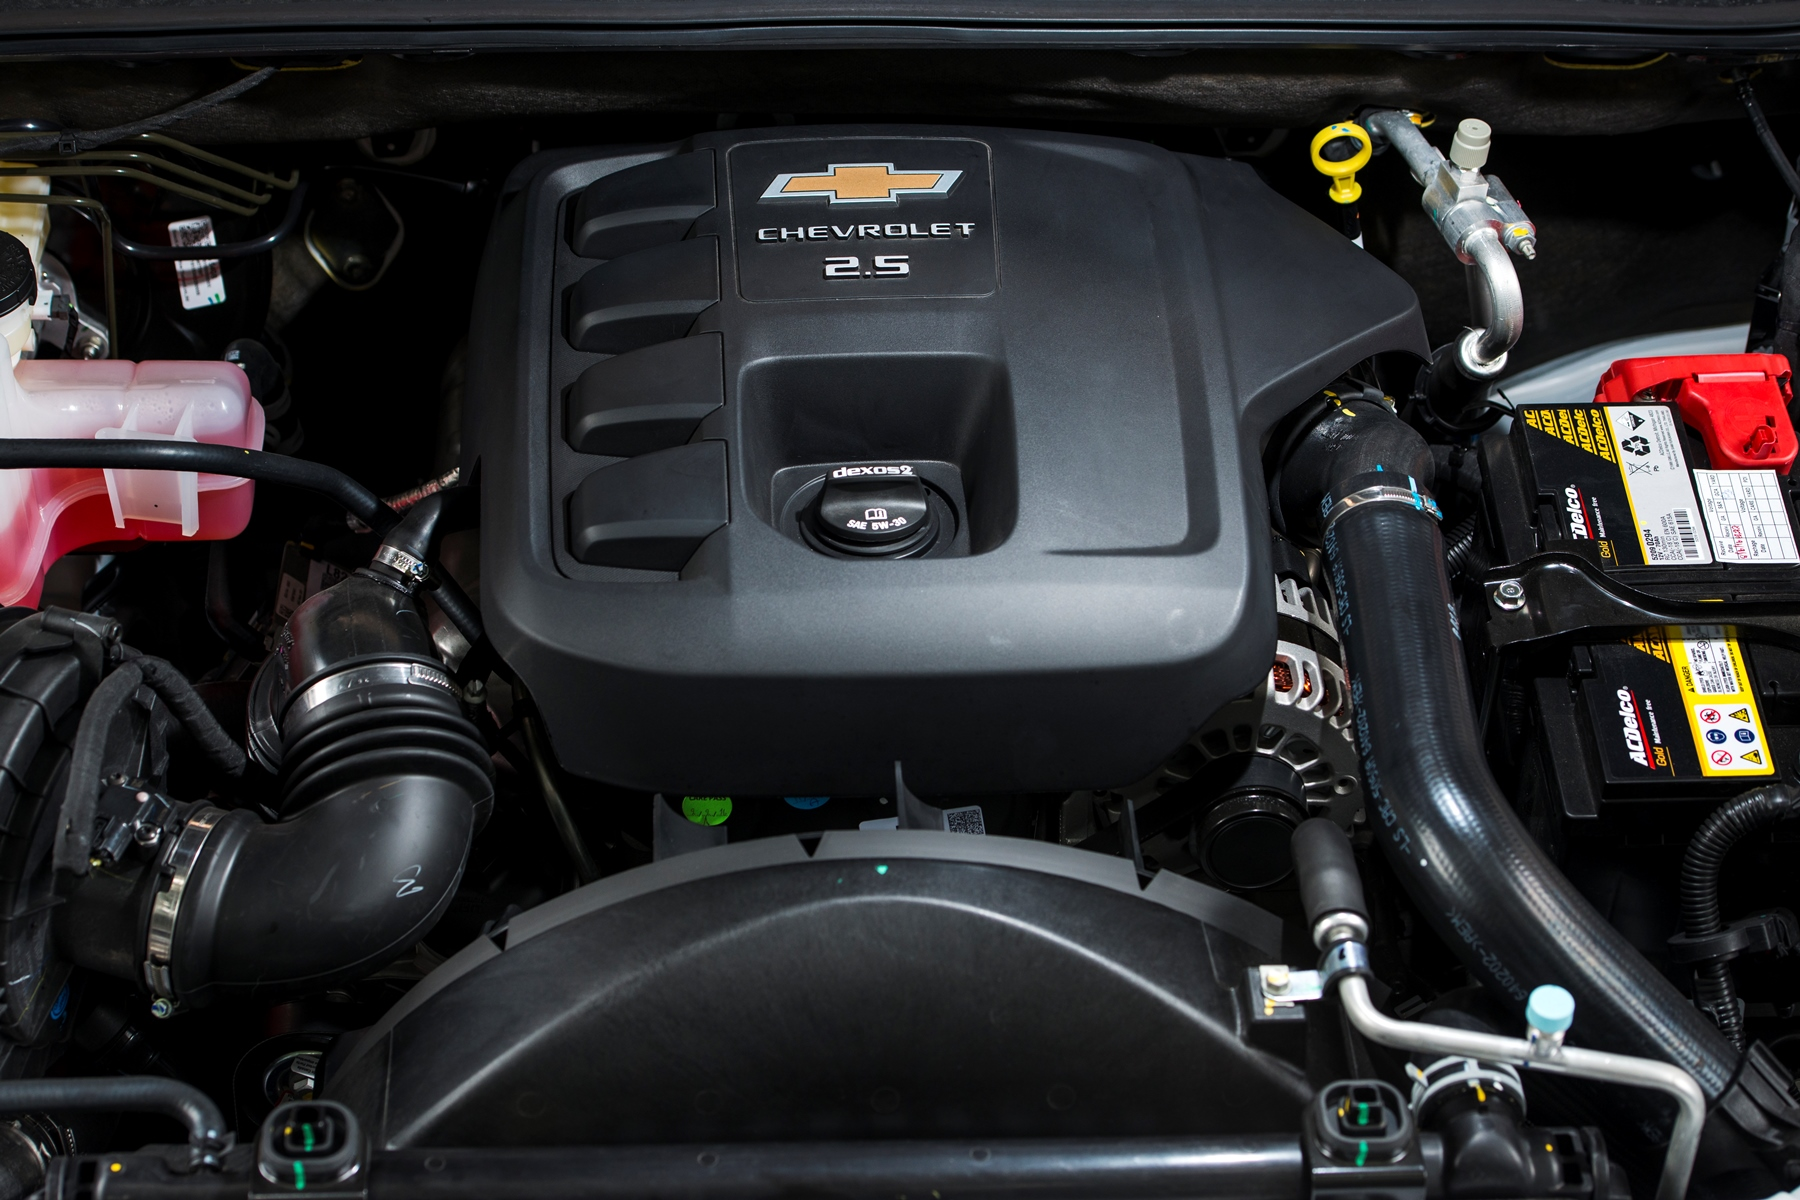 The Duramax Advantage: Chevrolet's Powerful Engine Supports